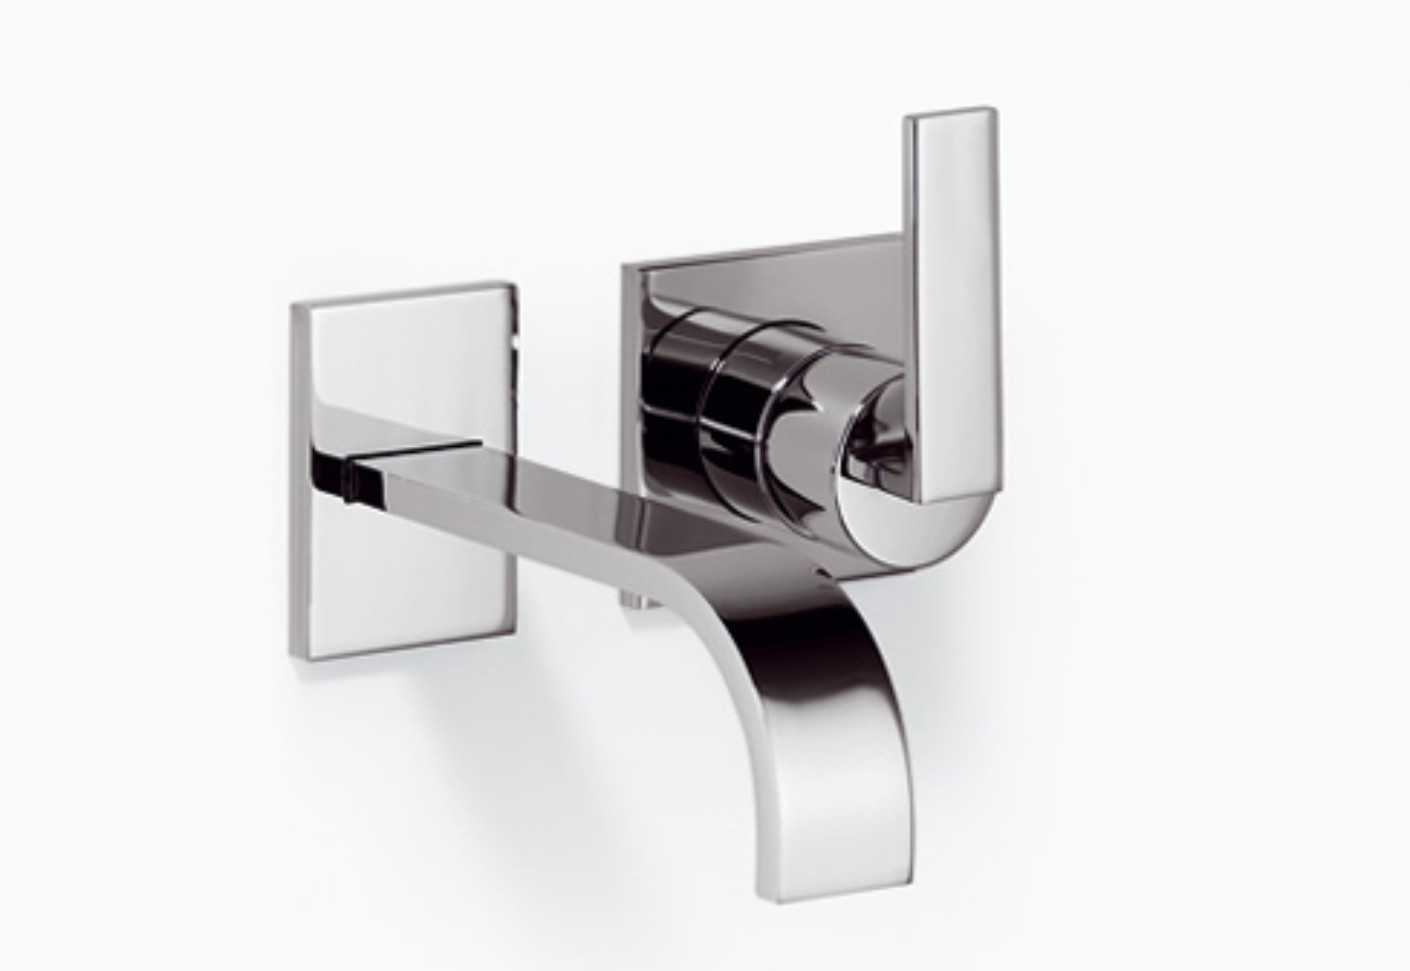 Dornbracht Mem Mem Wall Mounted Single Lever Basin Mixer 2 Pieces By Dornbracht